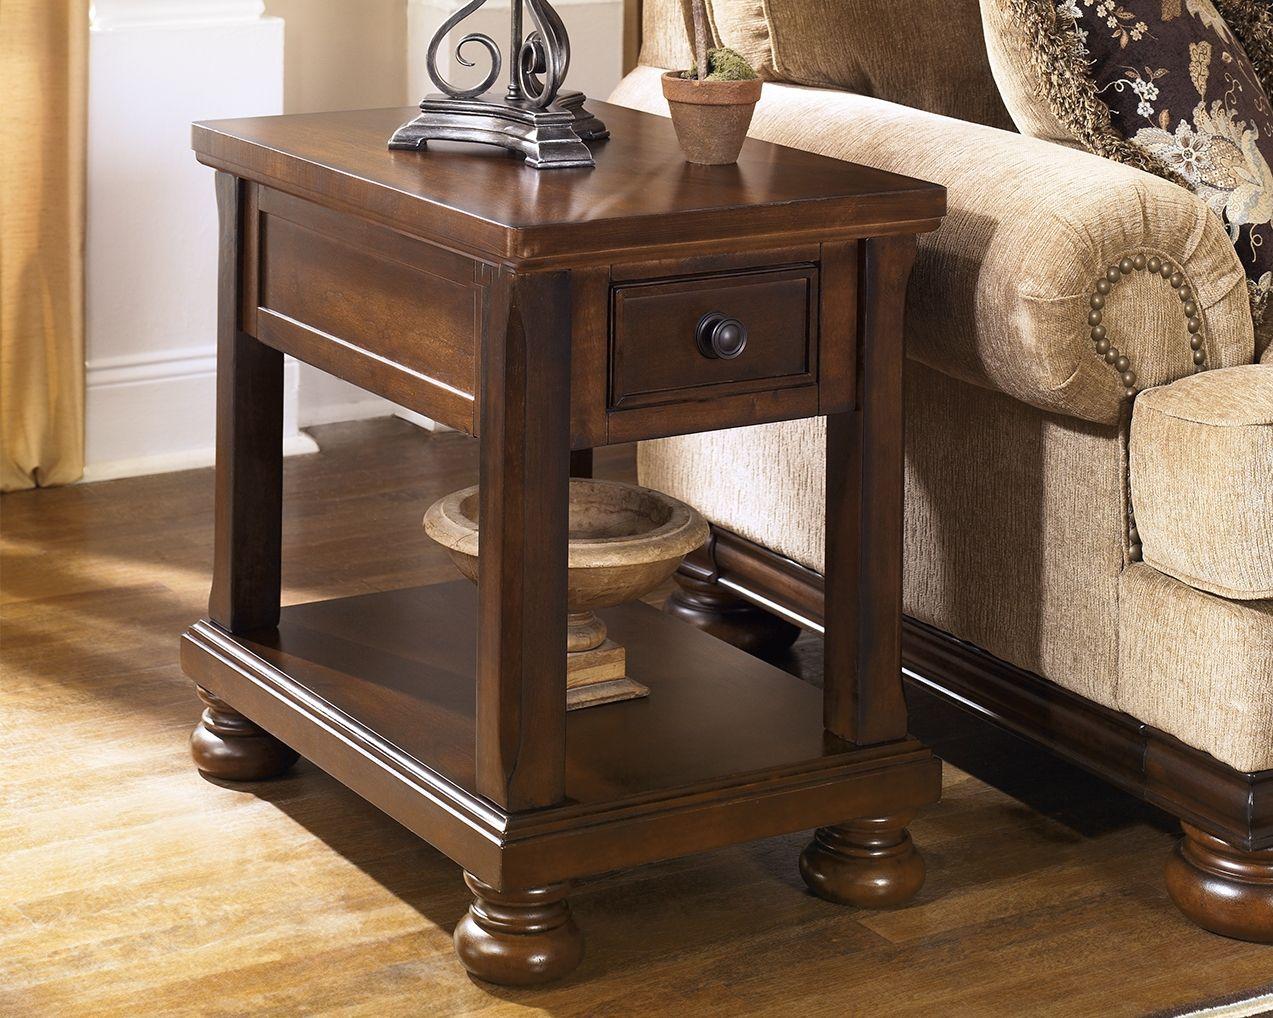 Porter Chairside End Table Ashley Furniture Homestore In 2021 End Tables Ashley Furniture Furniture